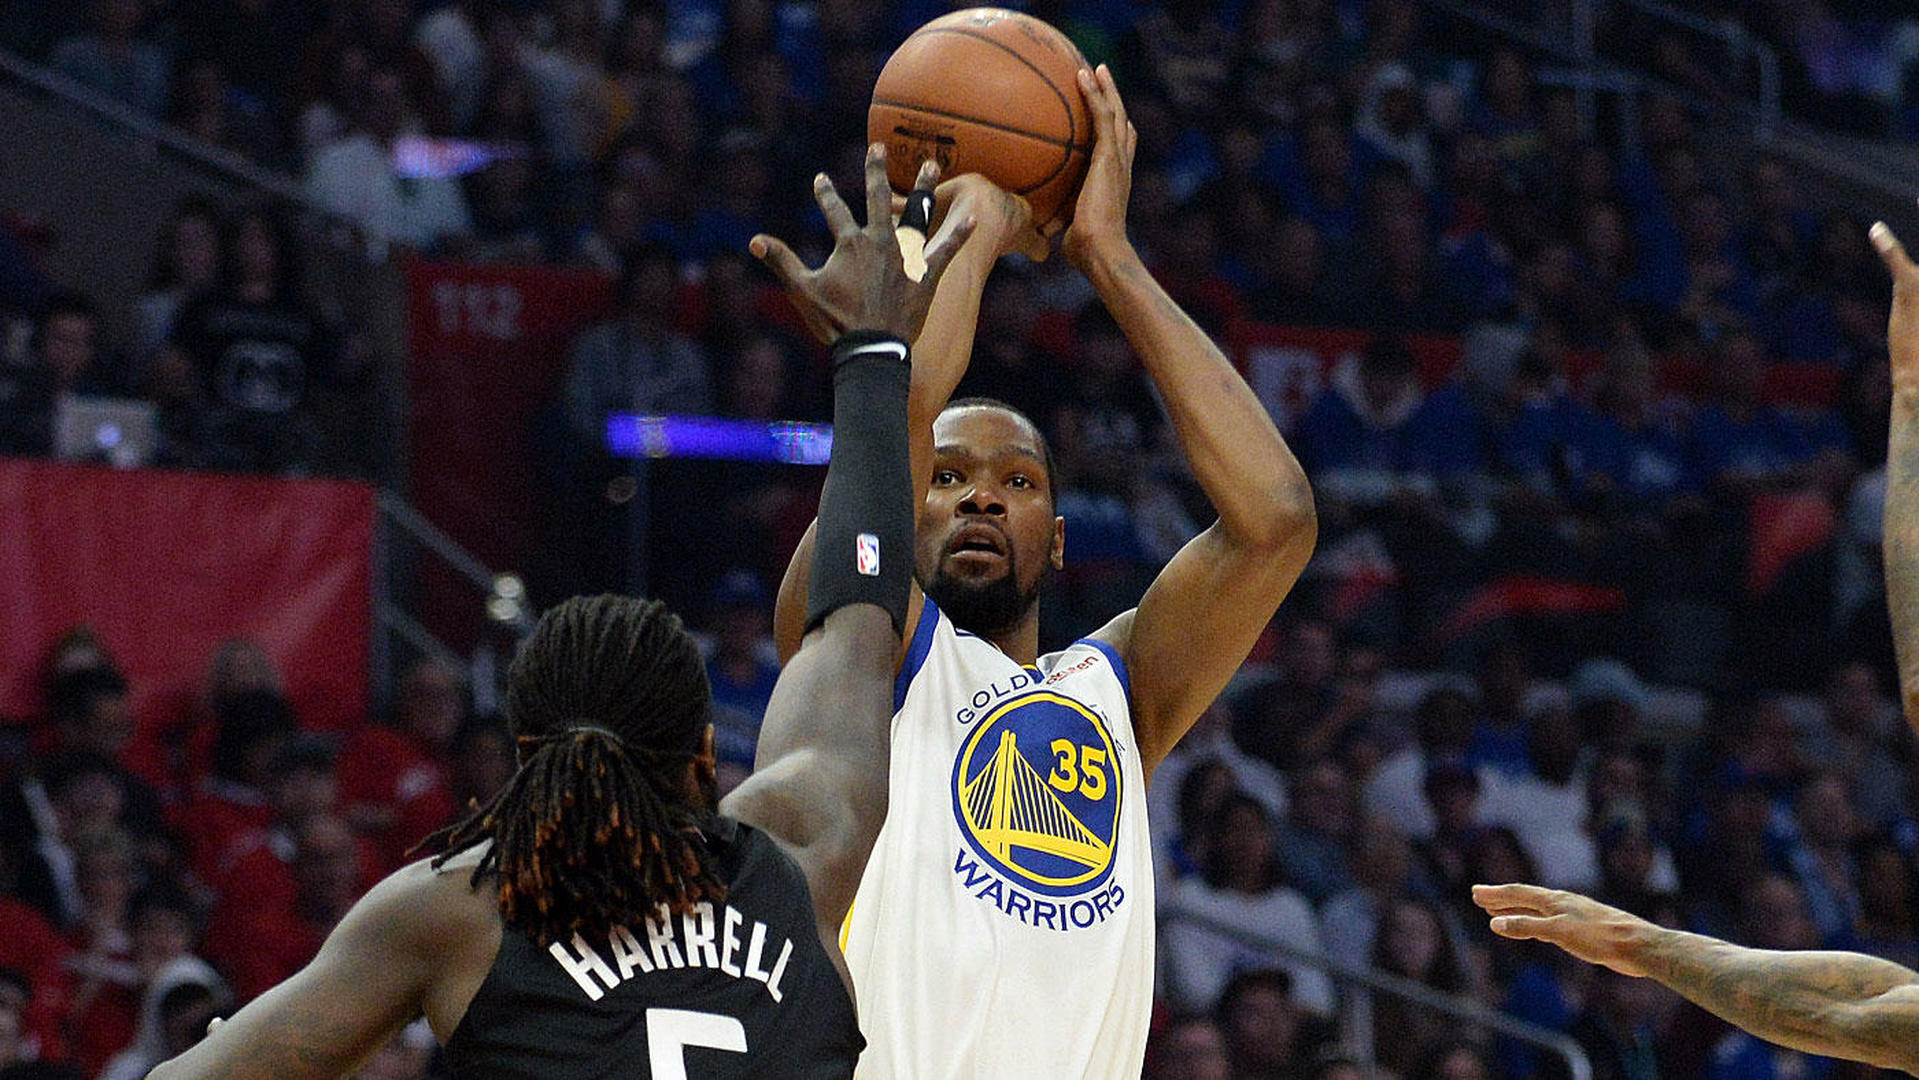 2019 NBA Playoffs: Watch Warriors vs. Clippers Game 5, series schedule, results, online stream, TV channel, odds, matchups